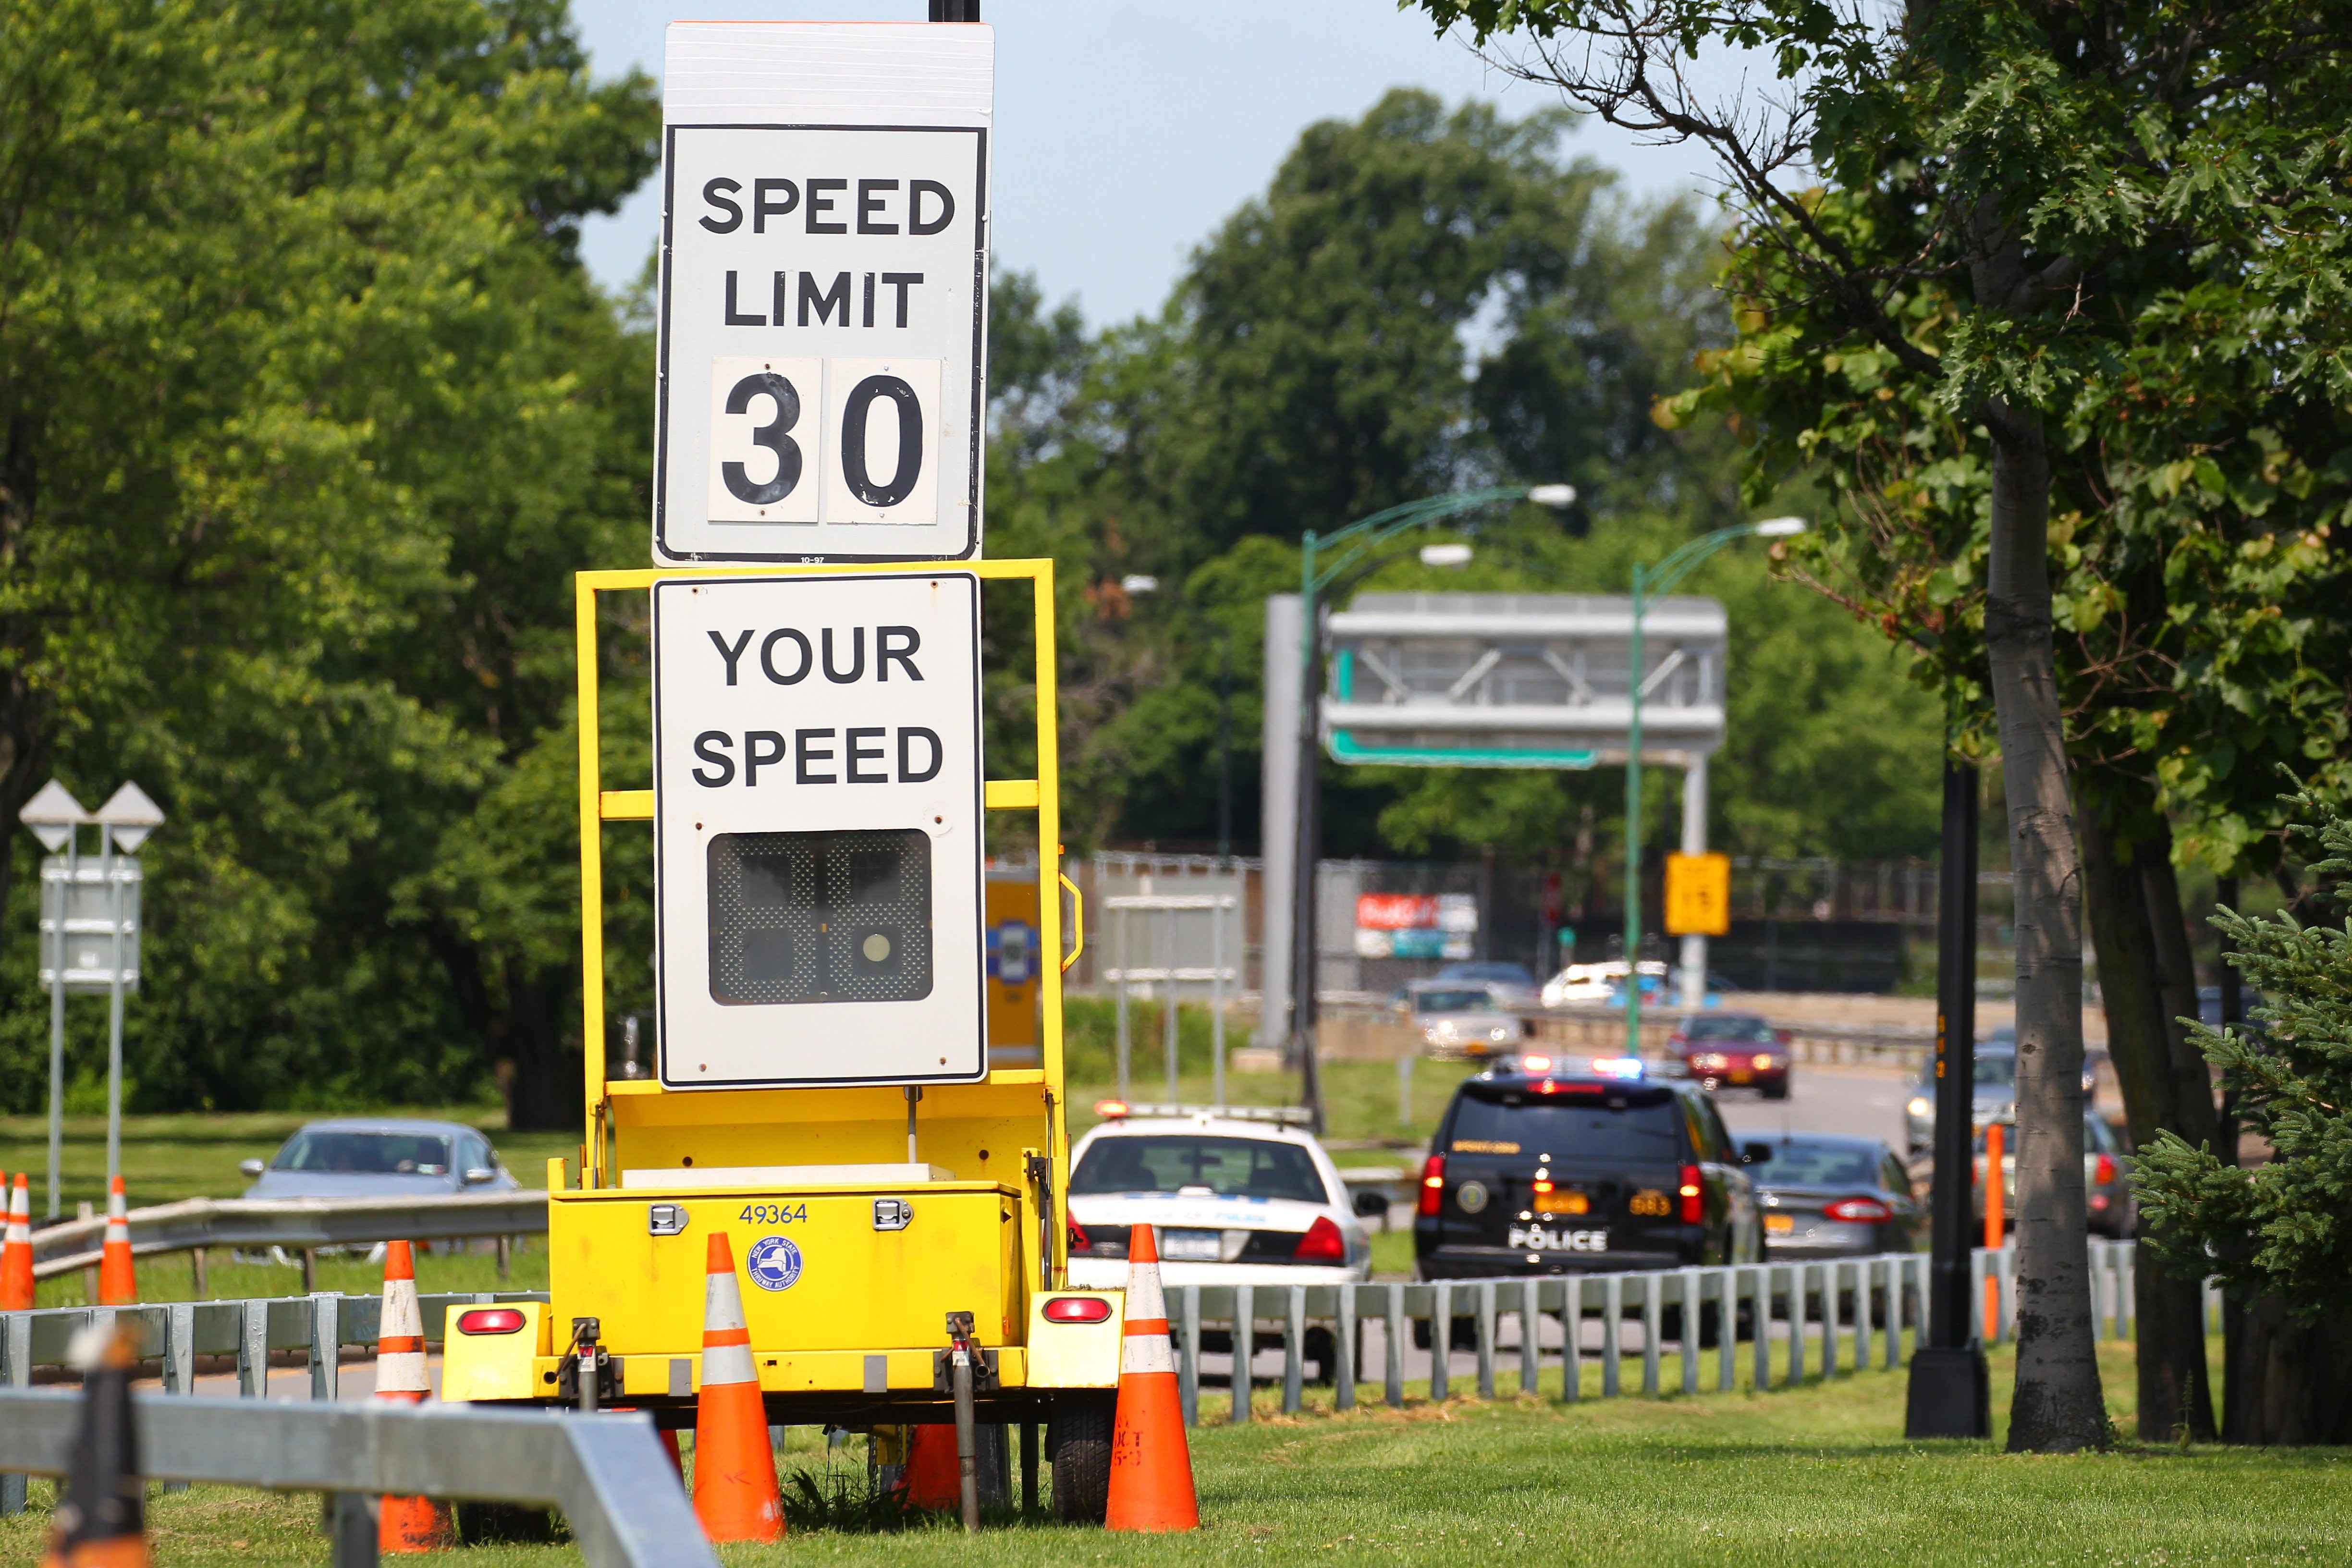 Speed-monitoring signs went up on the Scajaquada Expressway within days of the May 31 accident that killed a 3-year-old boy.